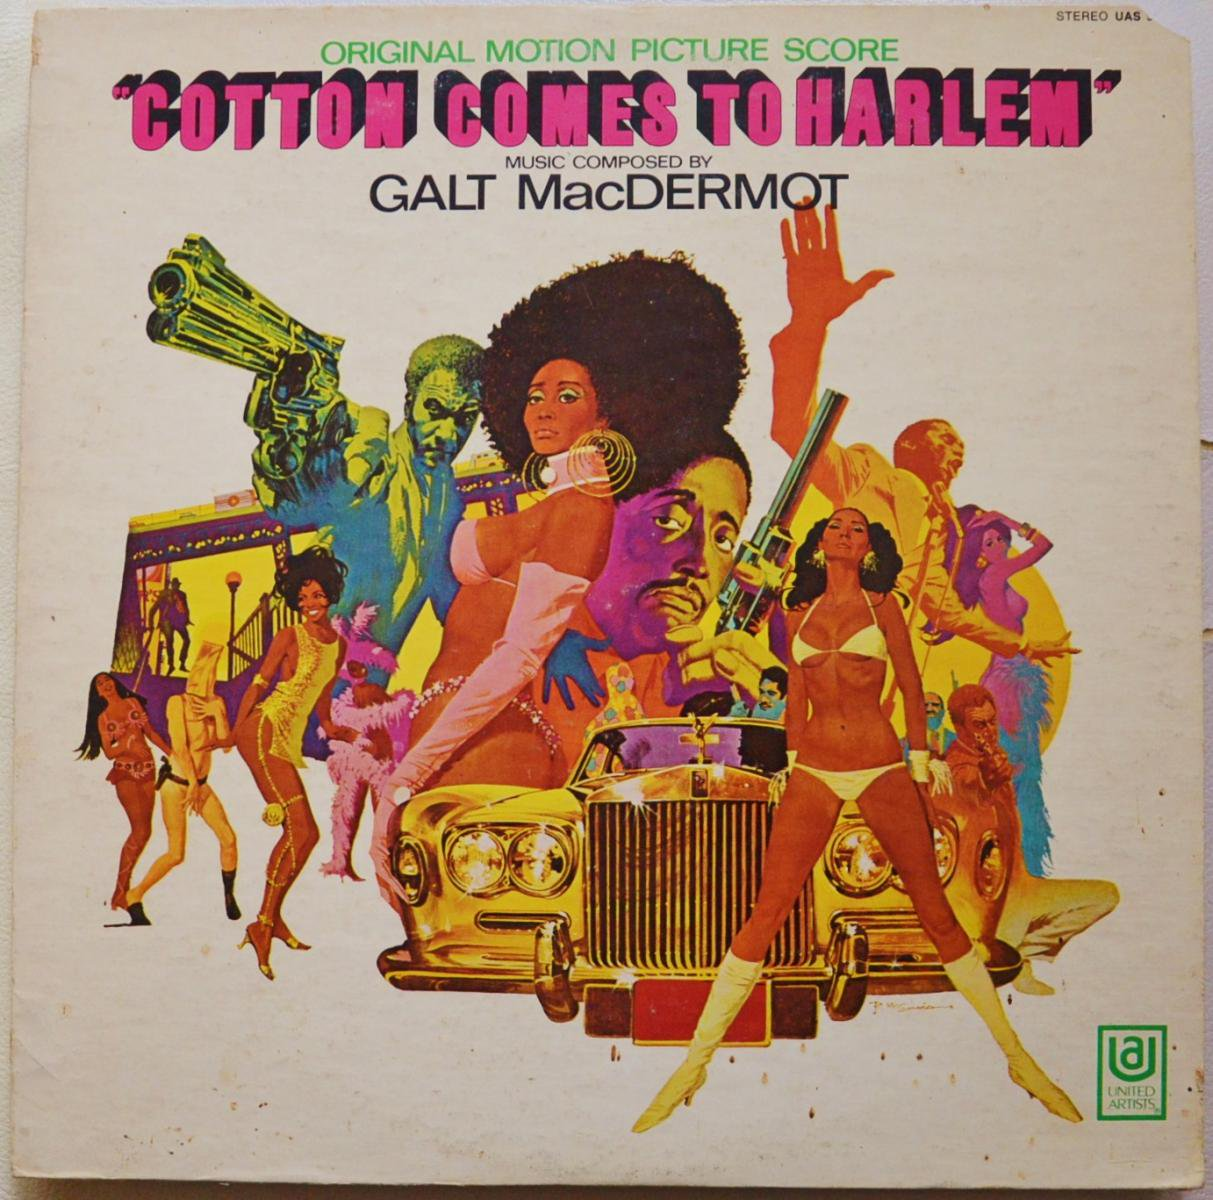 GALT MACDERMOT / COTTON COMES TO HARLEM (ORIGINAL MOTION PICTURE SCORE) (LP)